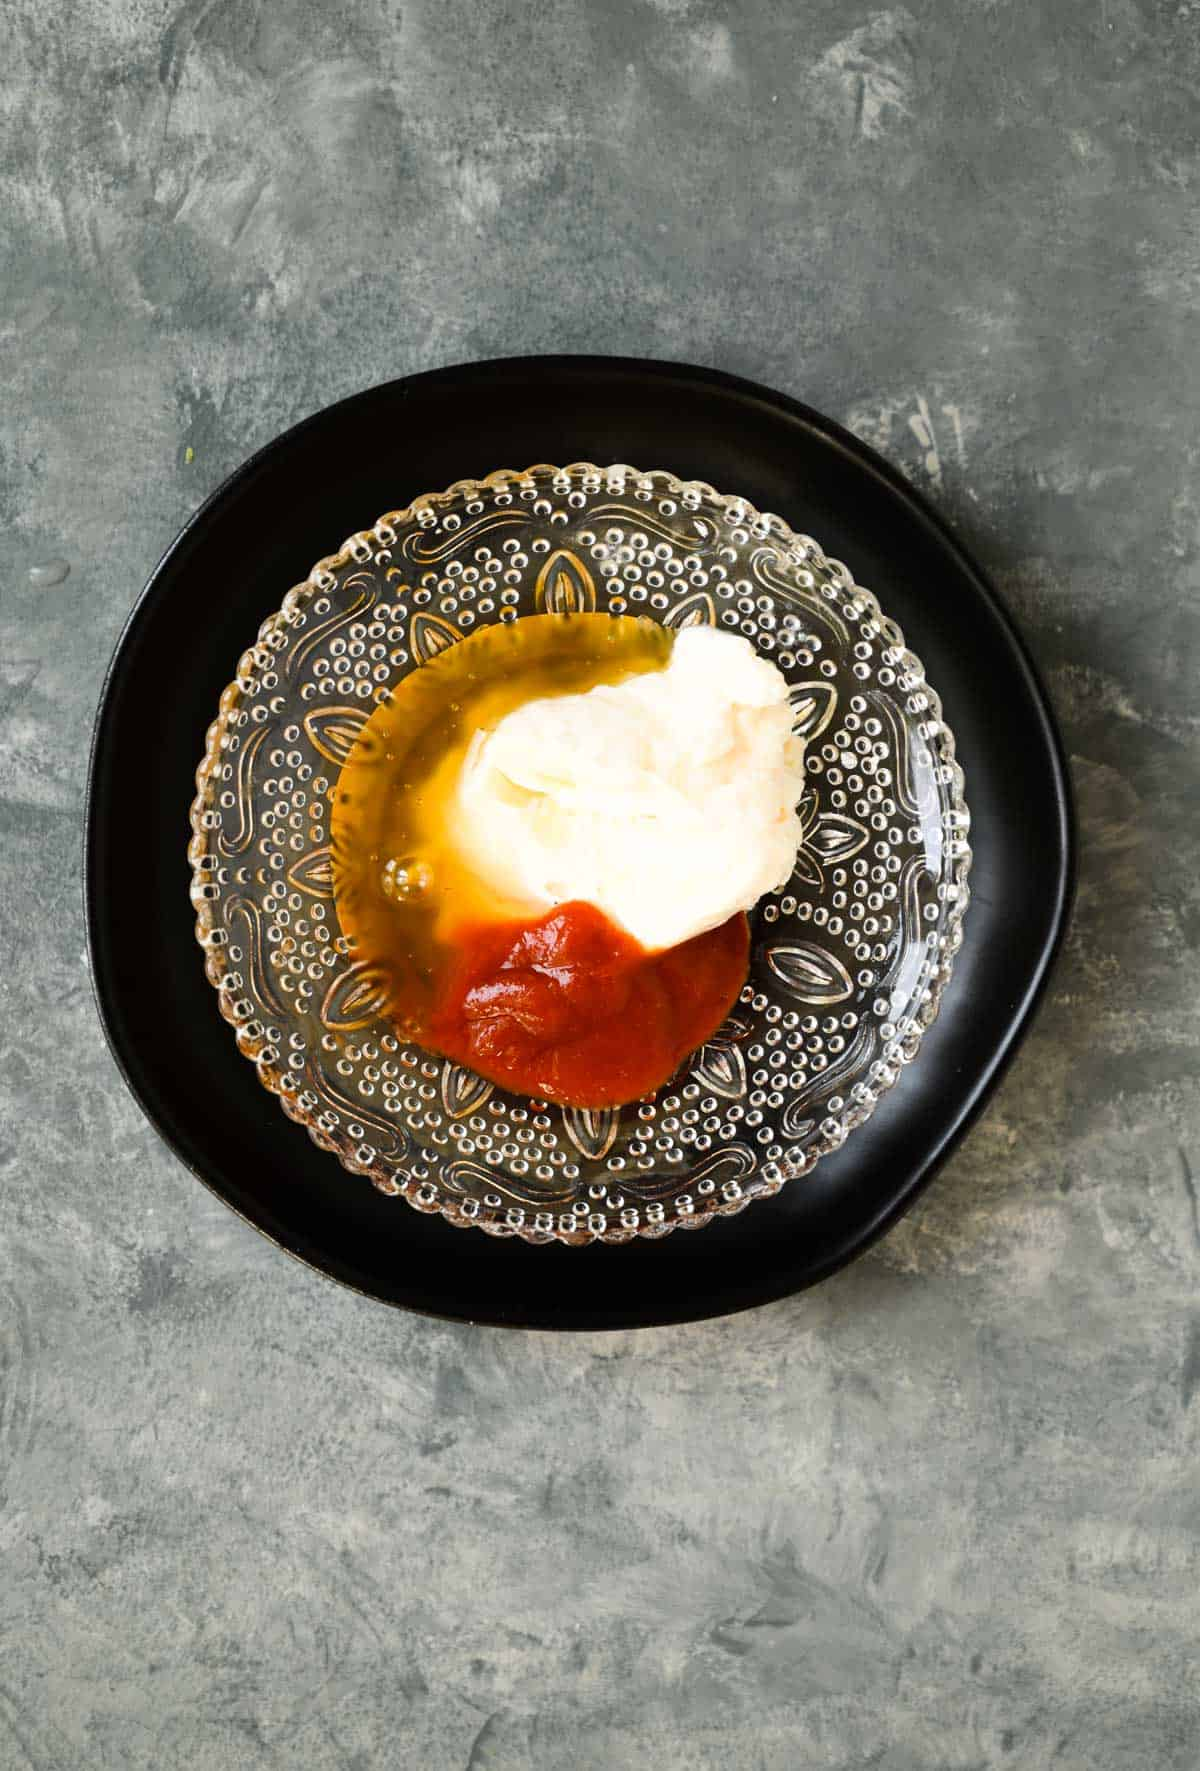 honey, mayonnaise, and sriracha in a cut glass bowl sitting inside a larger black bowl.